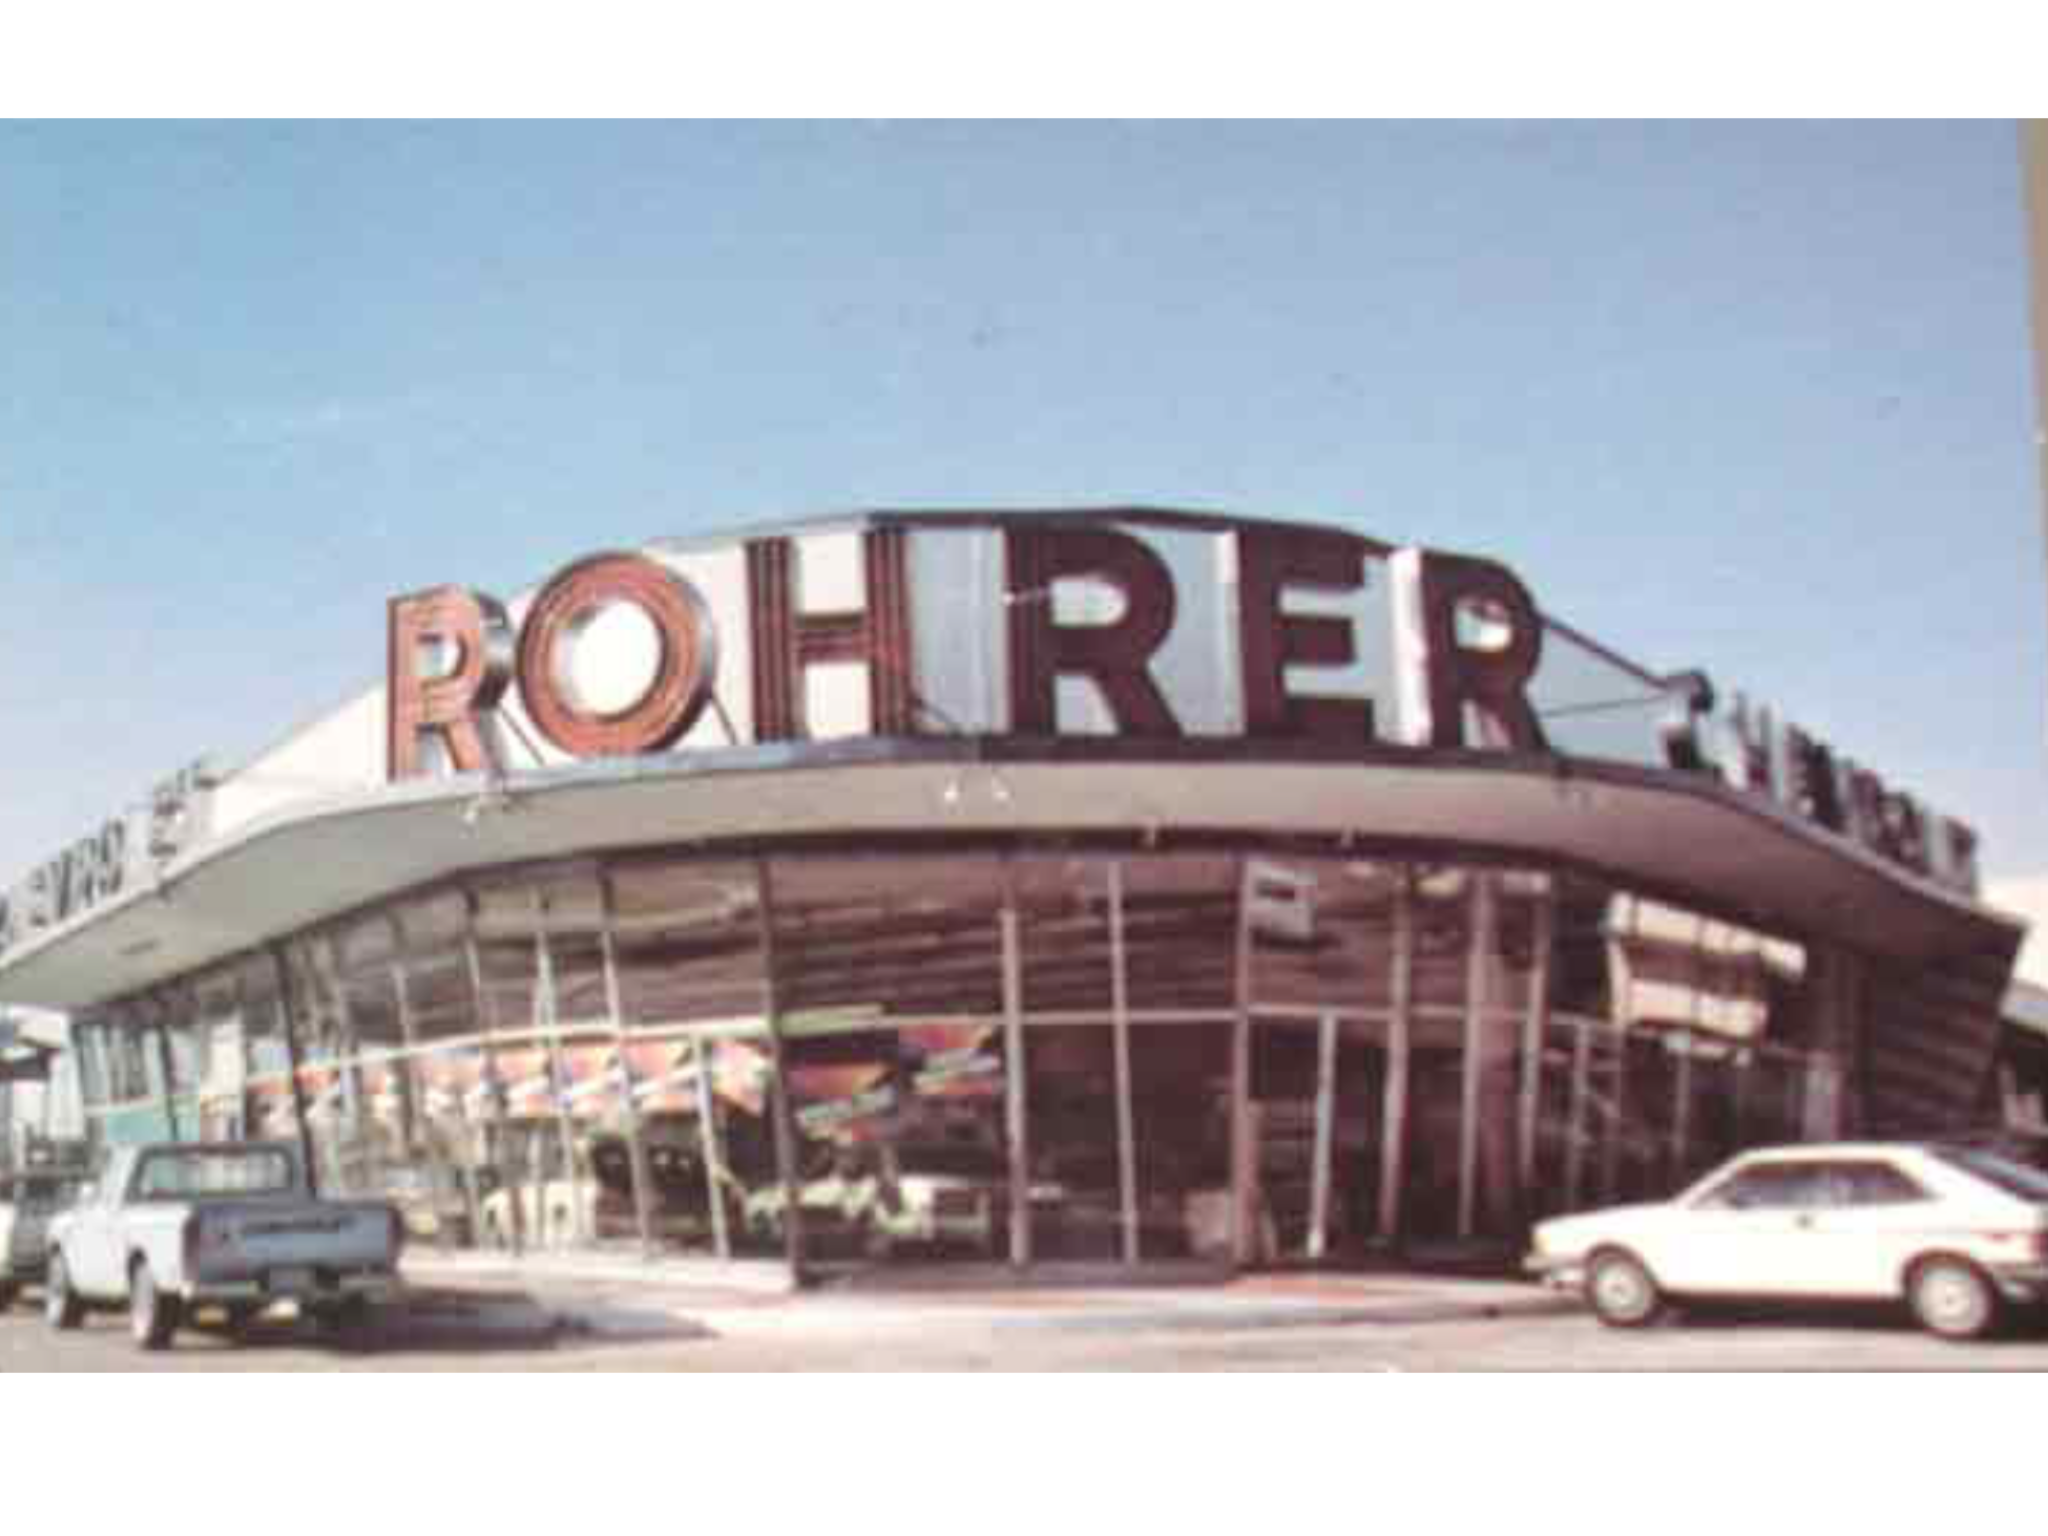 Rohrer Chevrolet Dealership Camden New Jersey Chevrolet